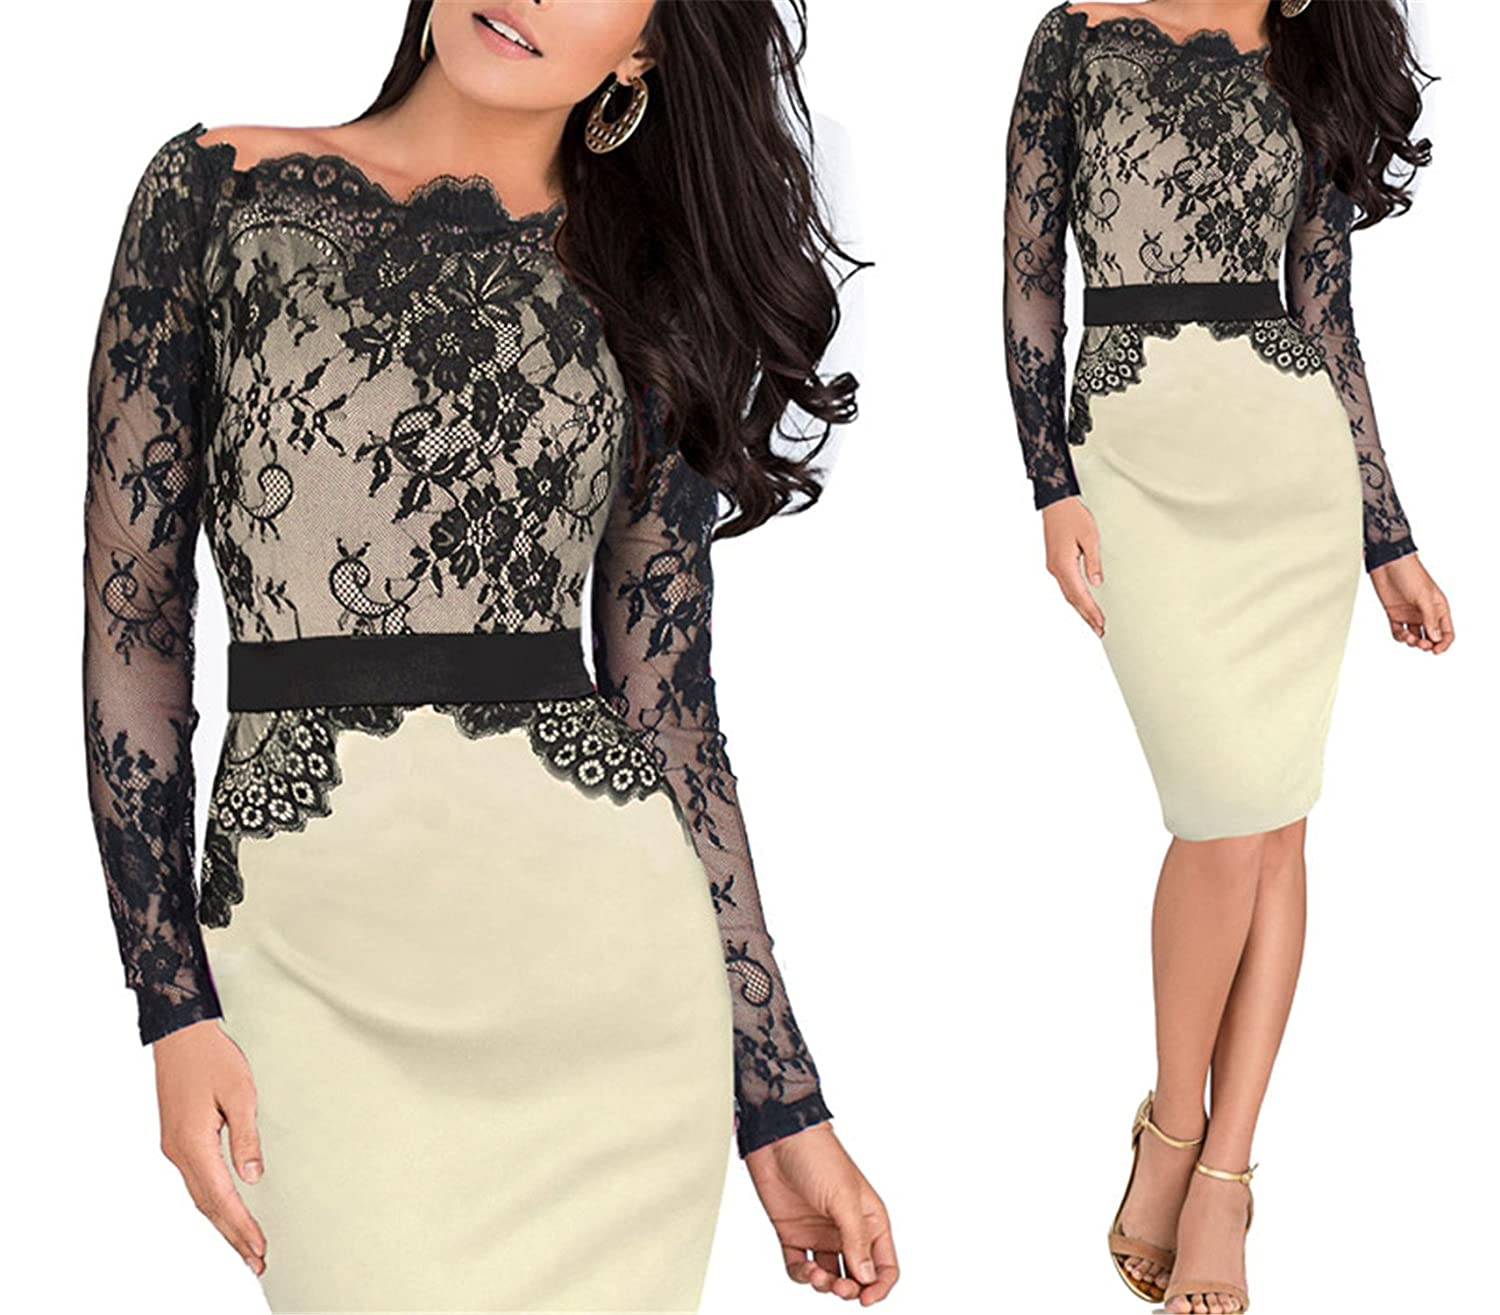 Beige Elegant Pinup Vintage Retro Lace Off Shoulder Patchwork Belted Stretch colorblock Bodycon Party Fitted Dress 719